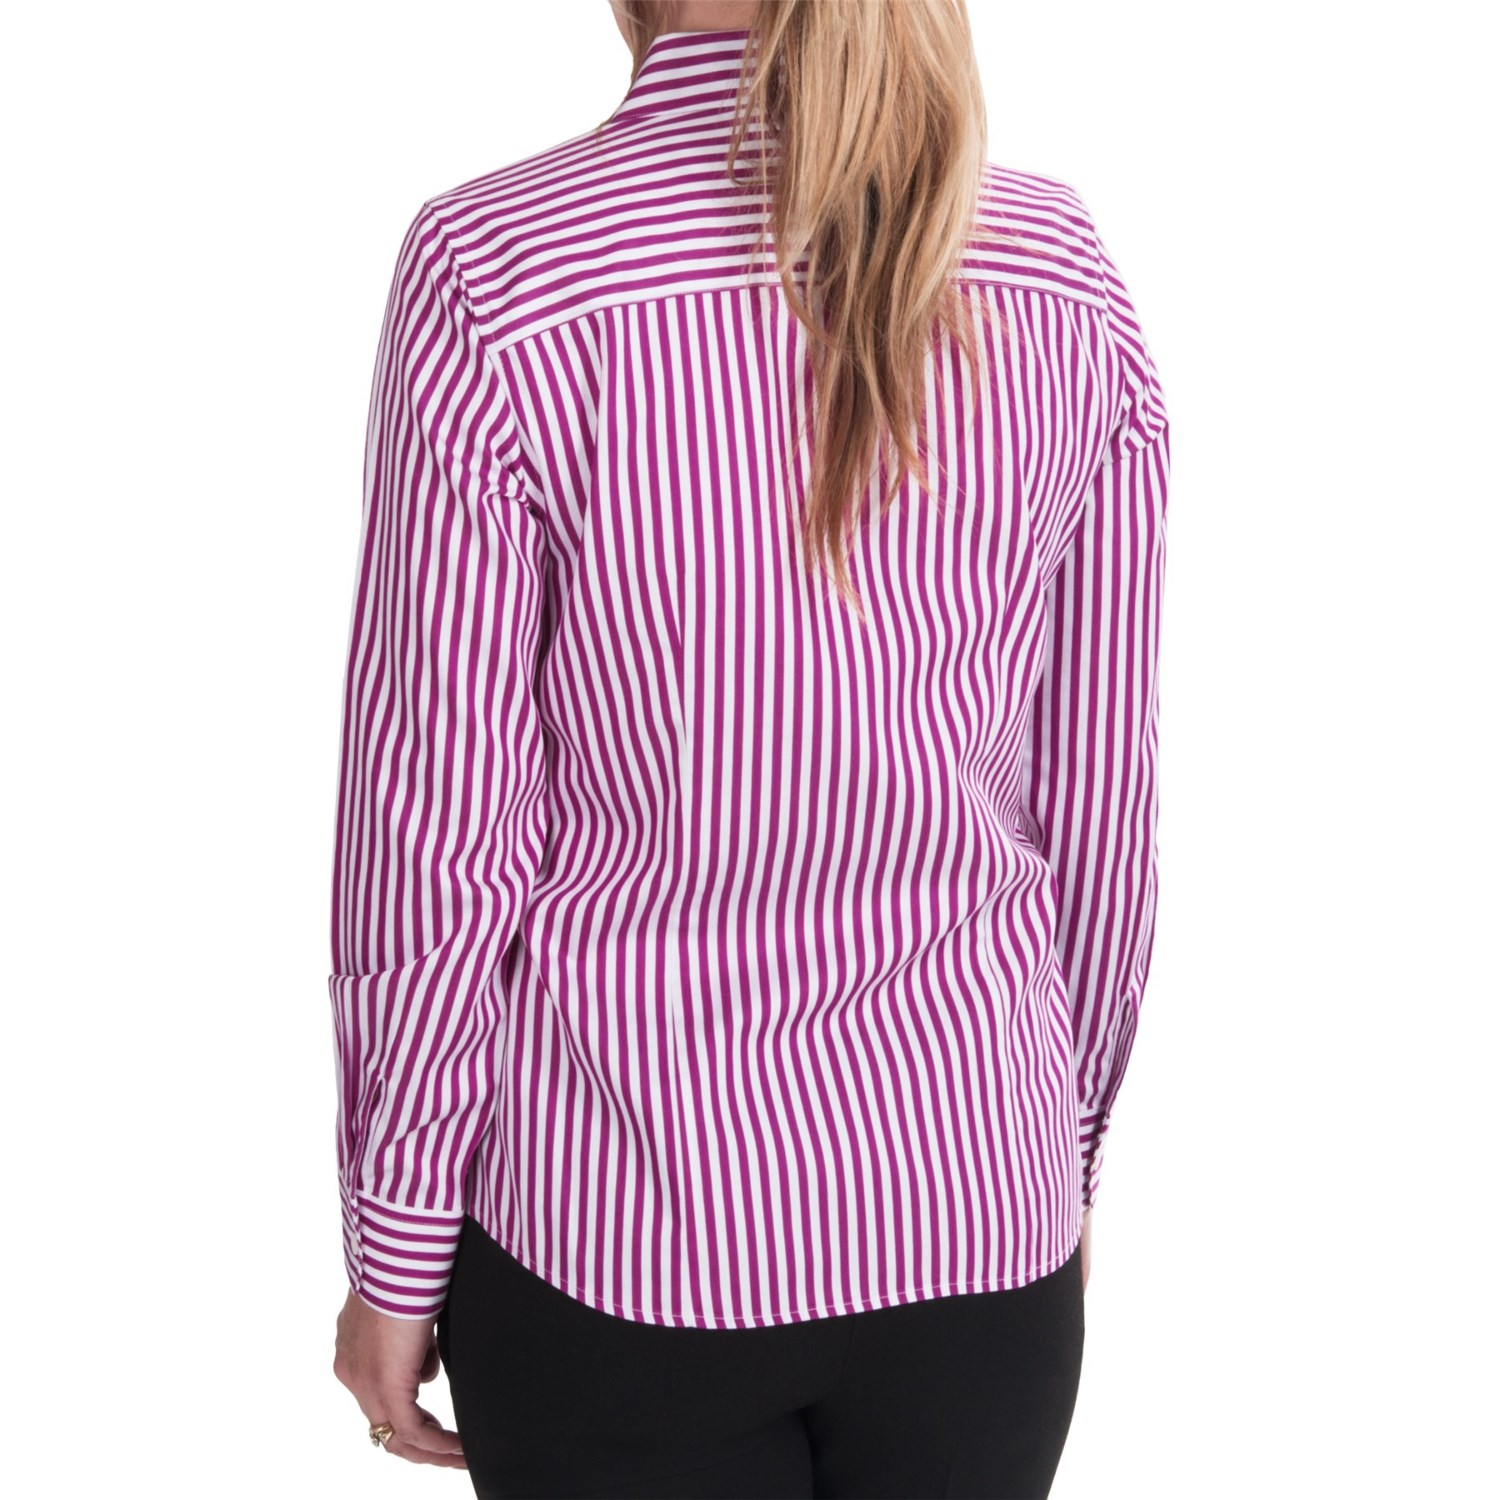 Foxcroft downtown shirt for women 7028t save 49 for No iron cotton shirts